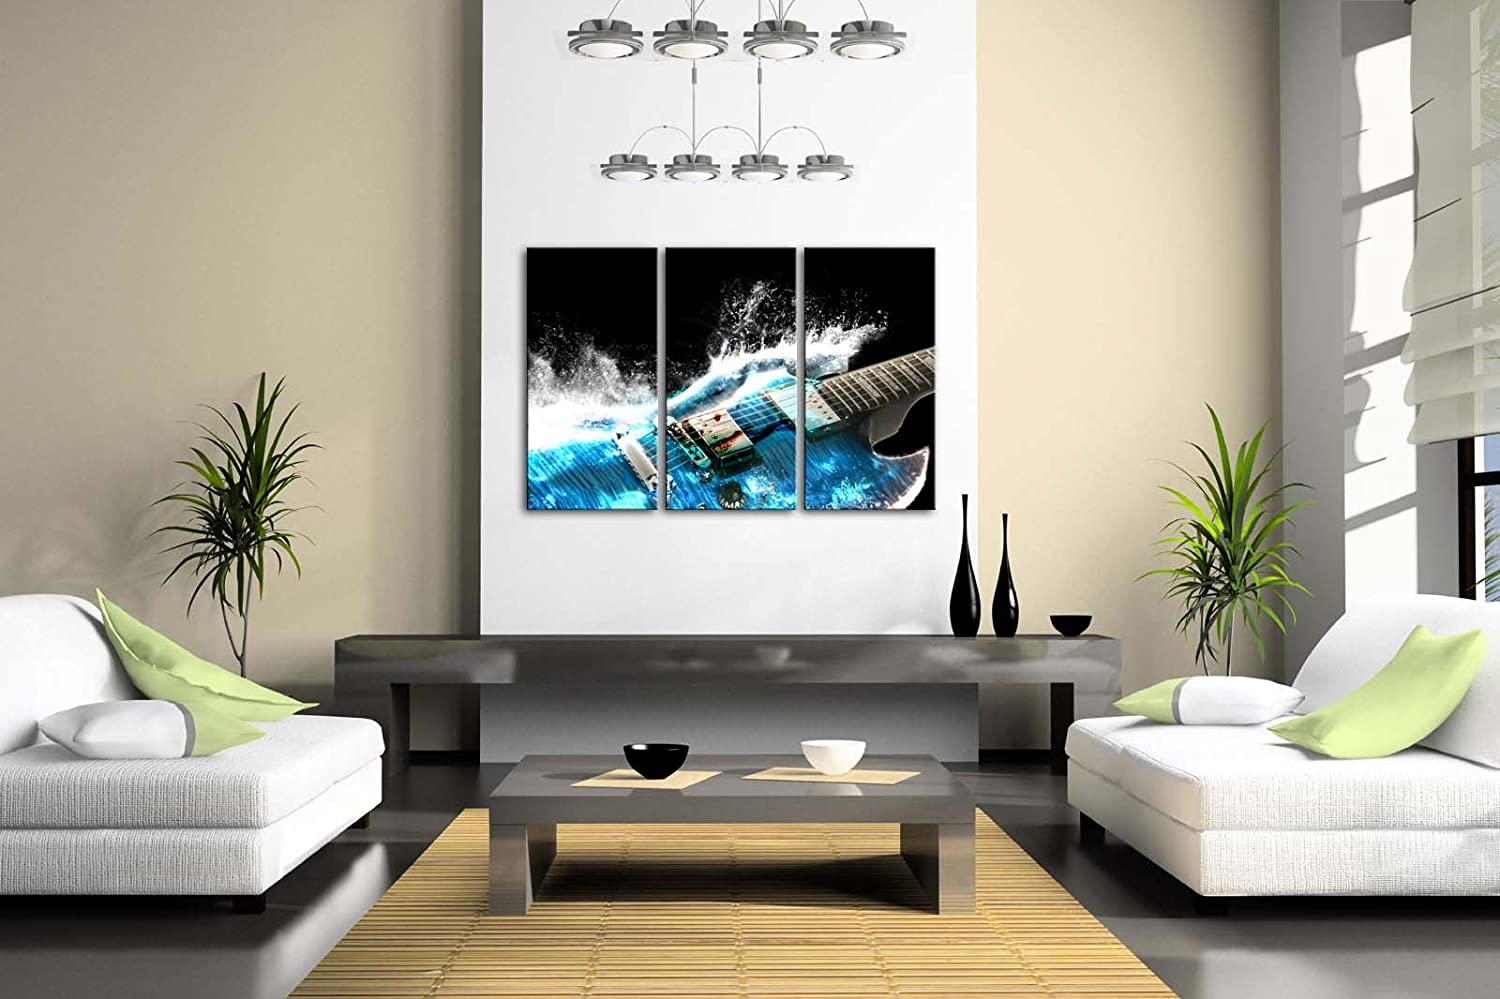 Amazon.com: Guitar In Blue And Waves Looks Beautiful Wall Art Painting The  Picture Print On Canvas Music Pictures For Home Decor Decoration Gift:  Posters U0026 ...